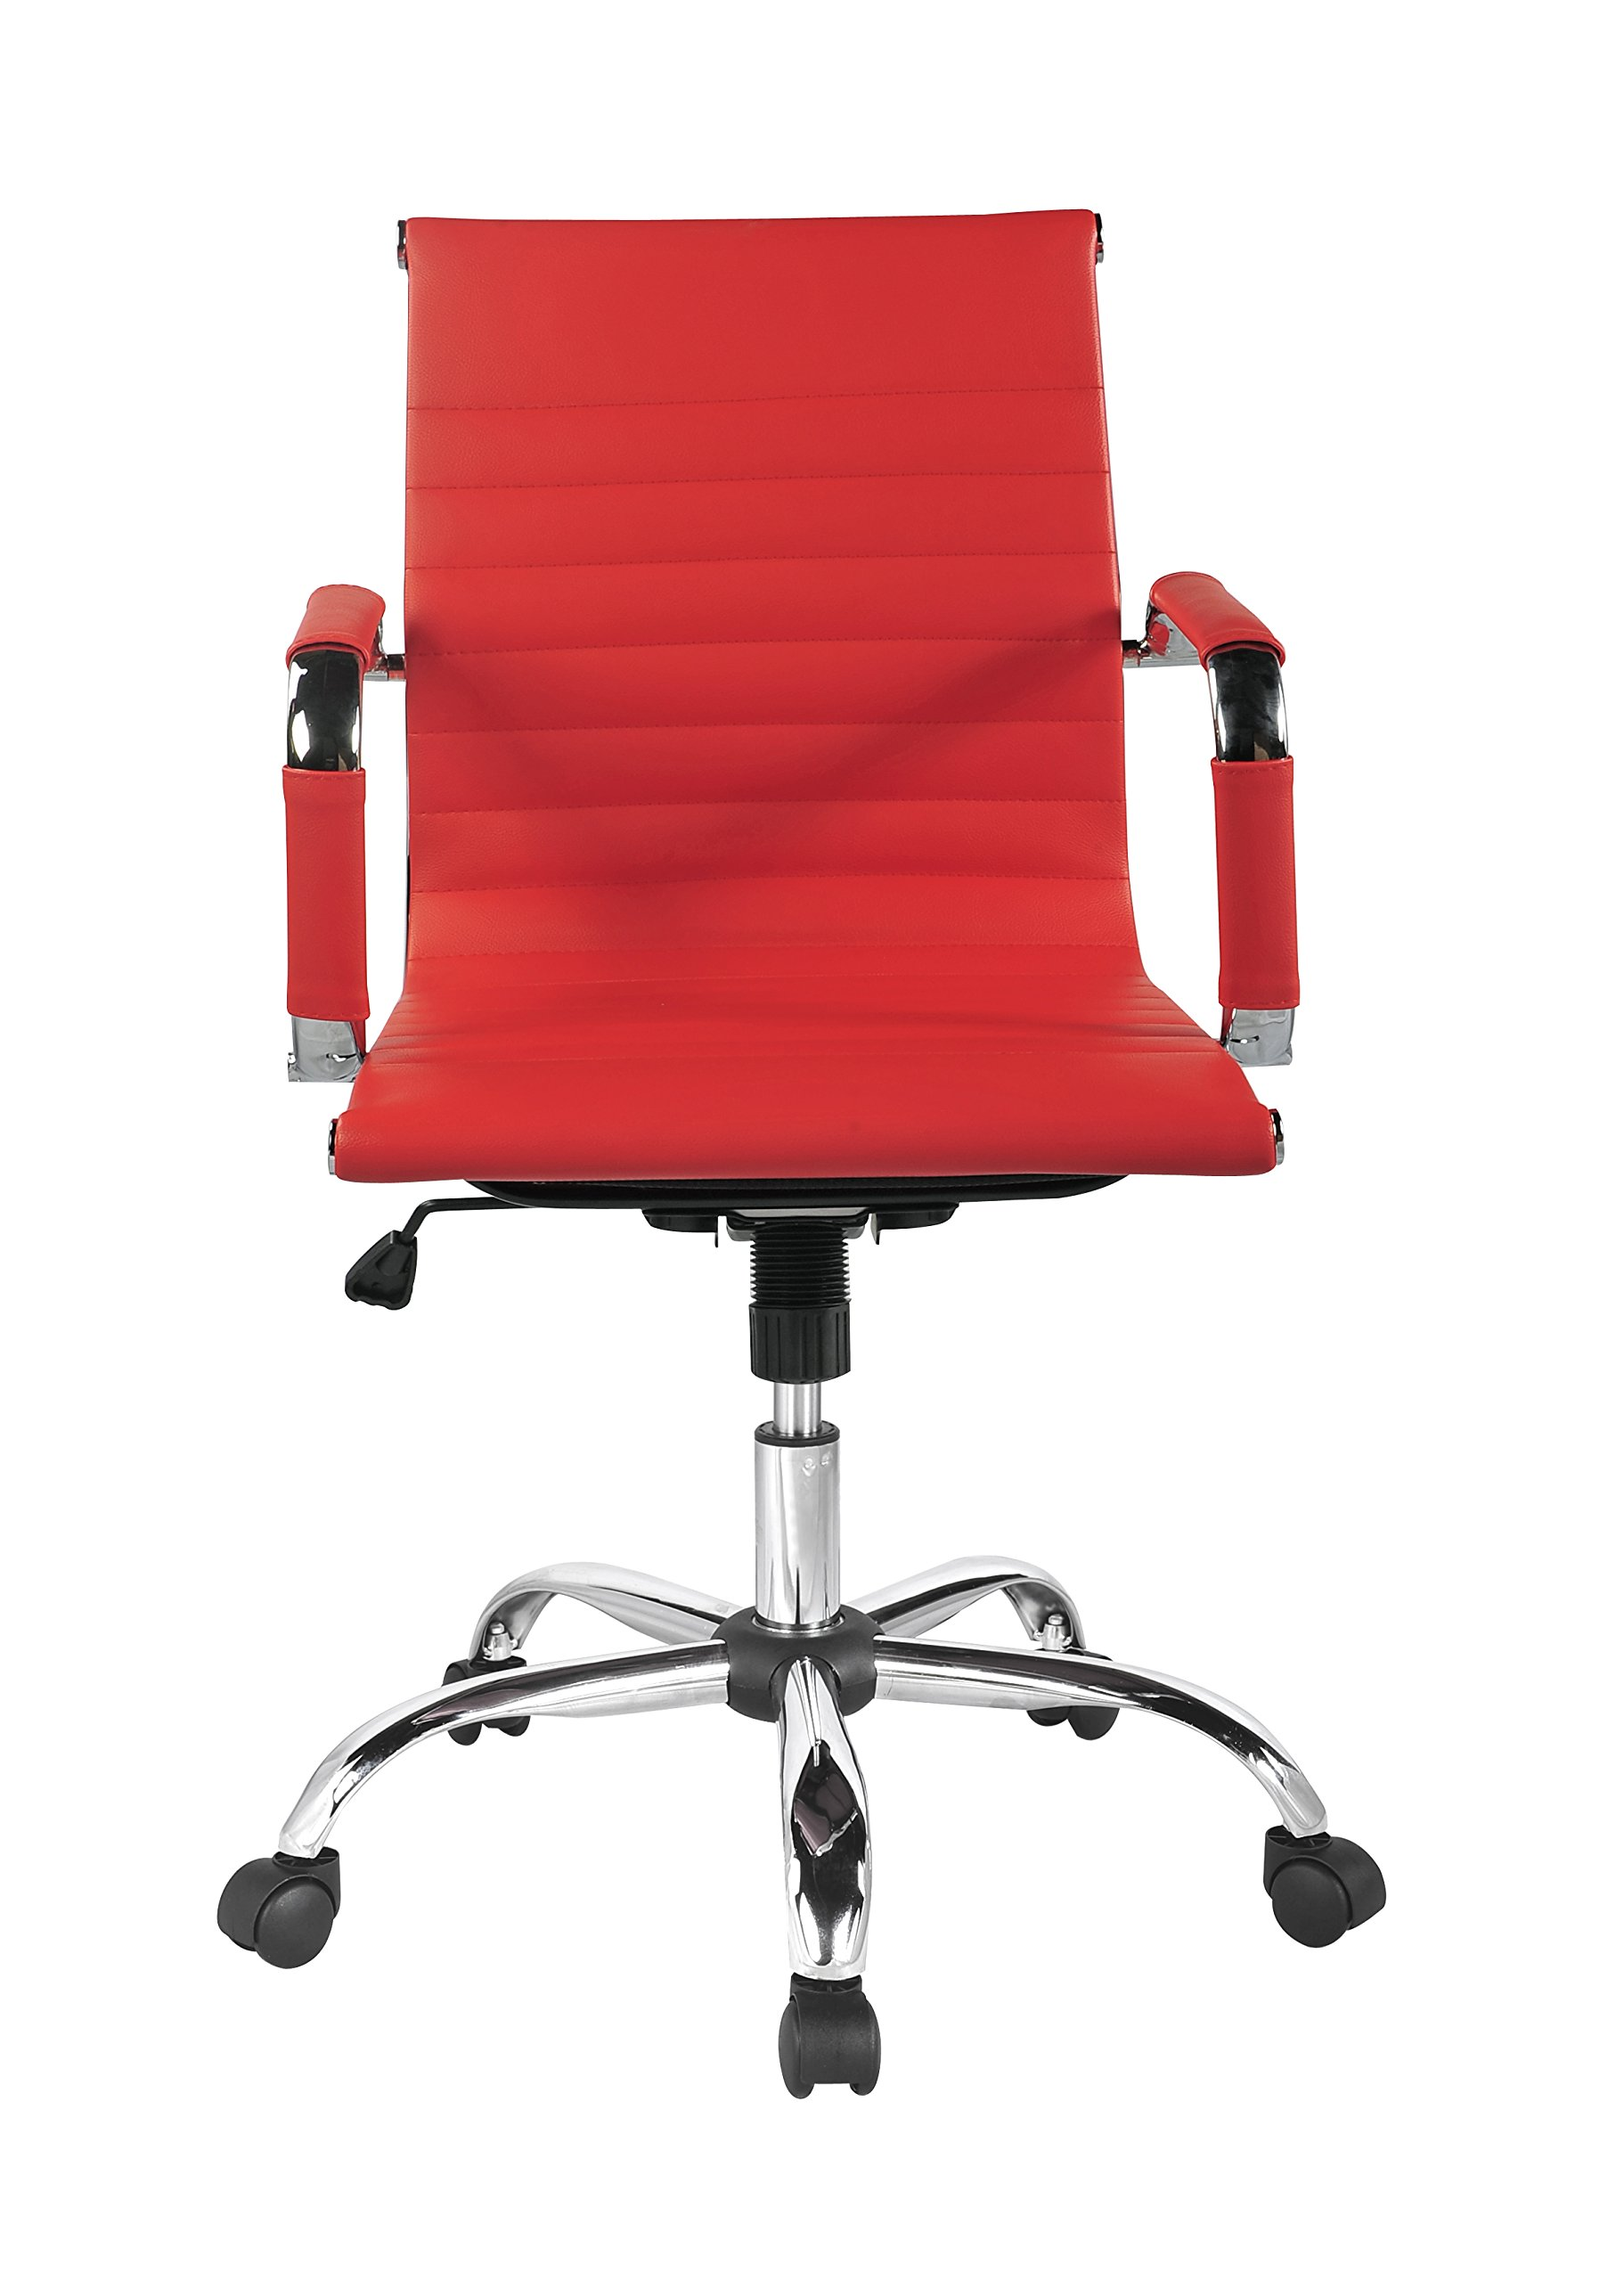 Winport Furniture TB-1963 WTB-1963 Office Chair, Red